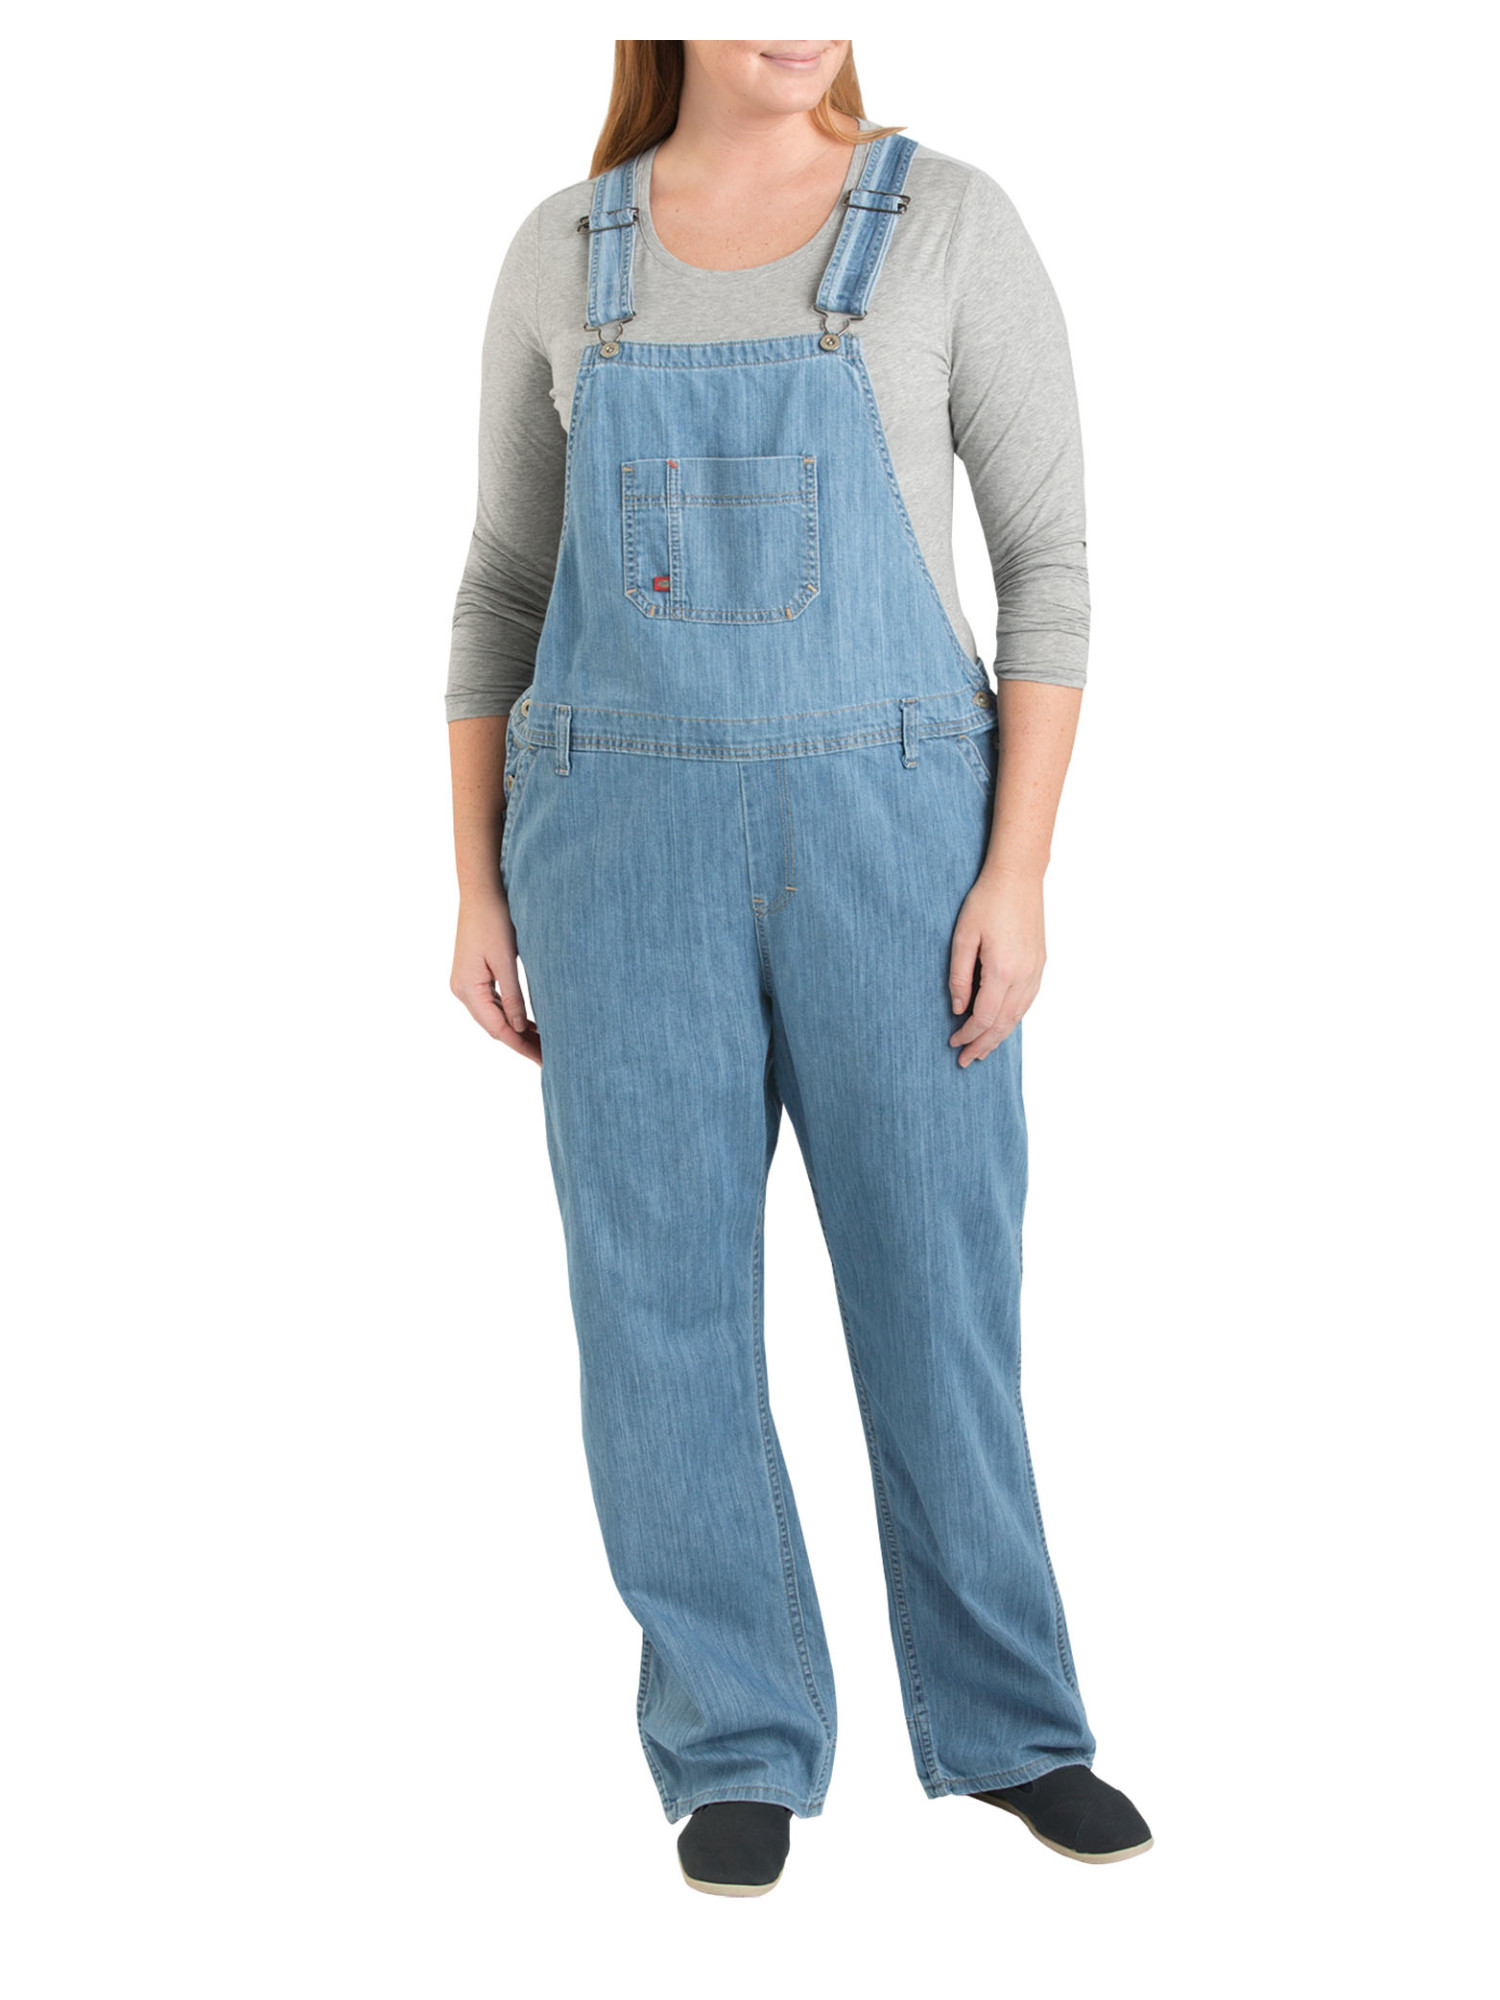 Women S Plus Size Denim Bib Overall Walmart Com